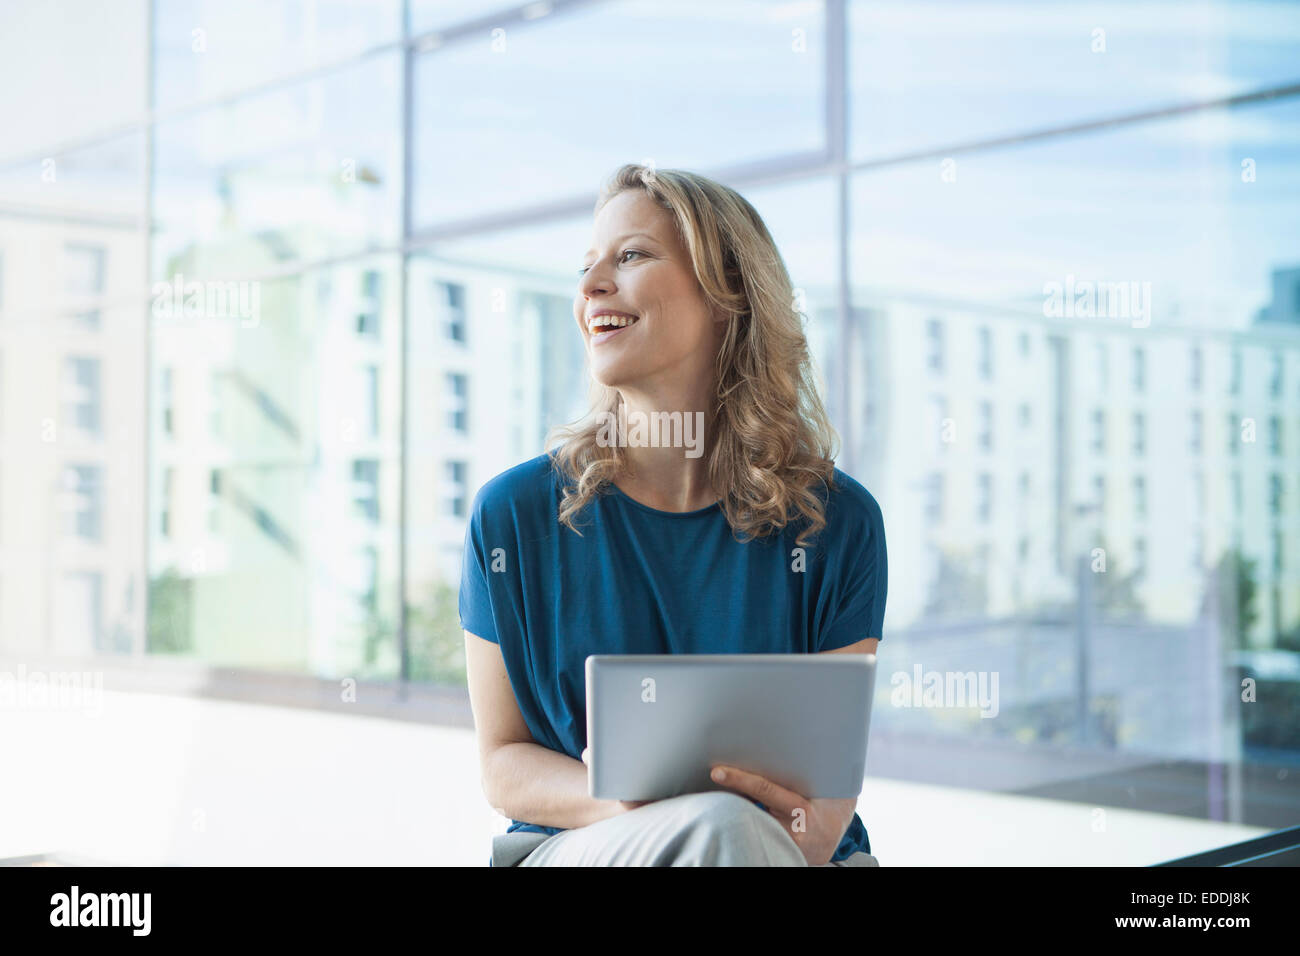 Smiling mature woman with digital tablet assis dans son appartement Photo Stock